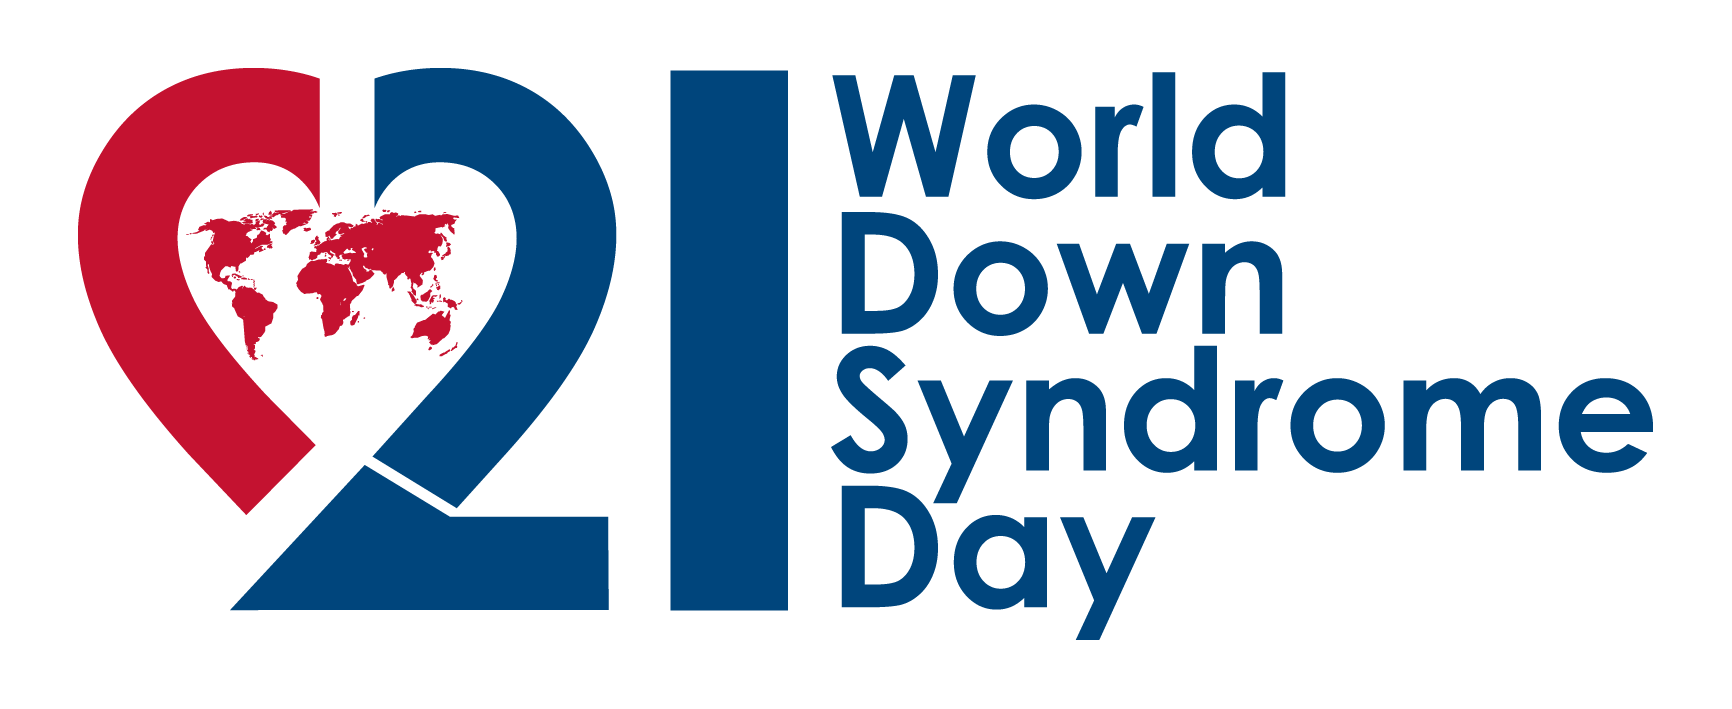 12th Anniversary of World Down Syndrome Day